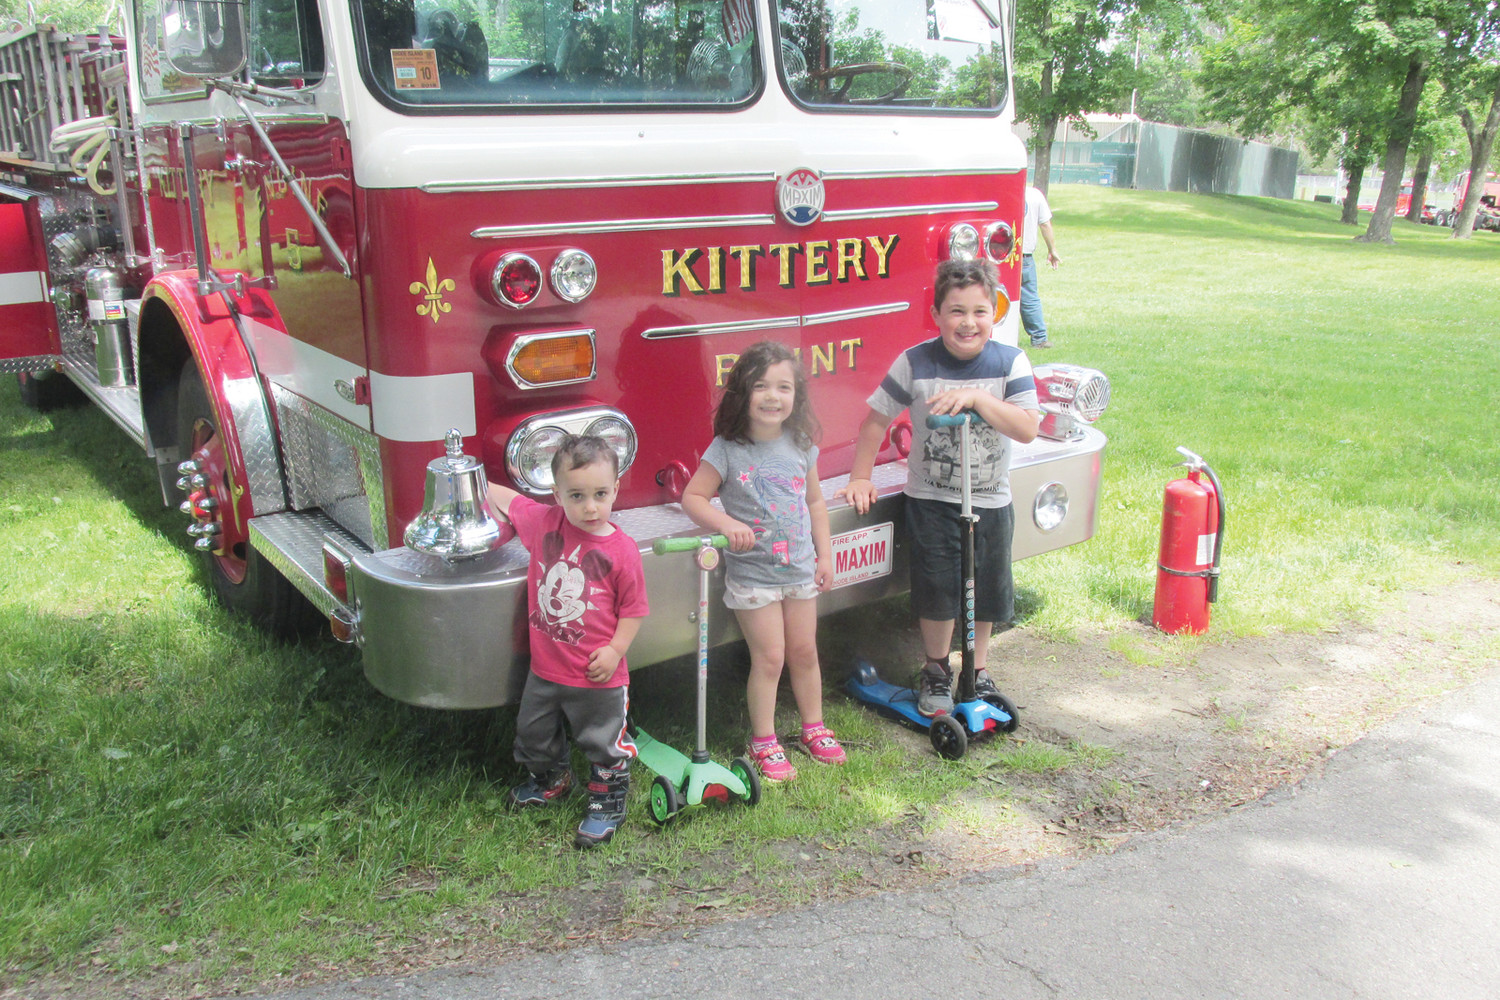 KID'S KORNER: The Thomas children – Elliot, 2; Marina, 4, and Harrison, 6 were among the many children that had their pictures taken Sunday beside one-time city and town operated fire trucks that are now the property of private owners/collectors. (Sun Rise photos by Pete Fontaine)